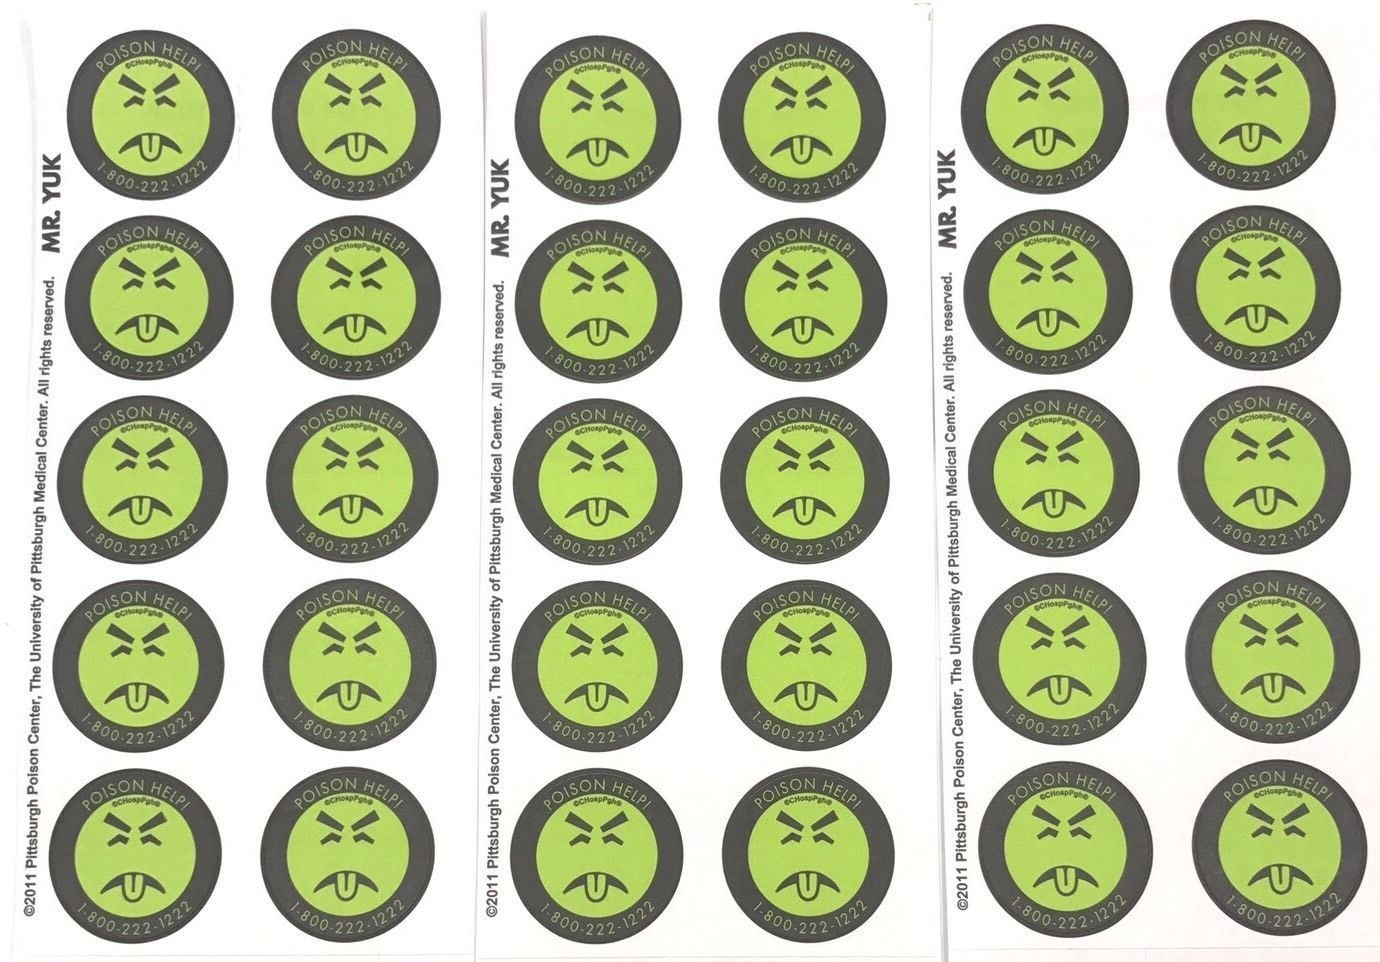 Mr Yuk Stickers 3 Sheets 30 Total Poison Prevention Genuine